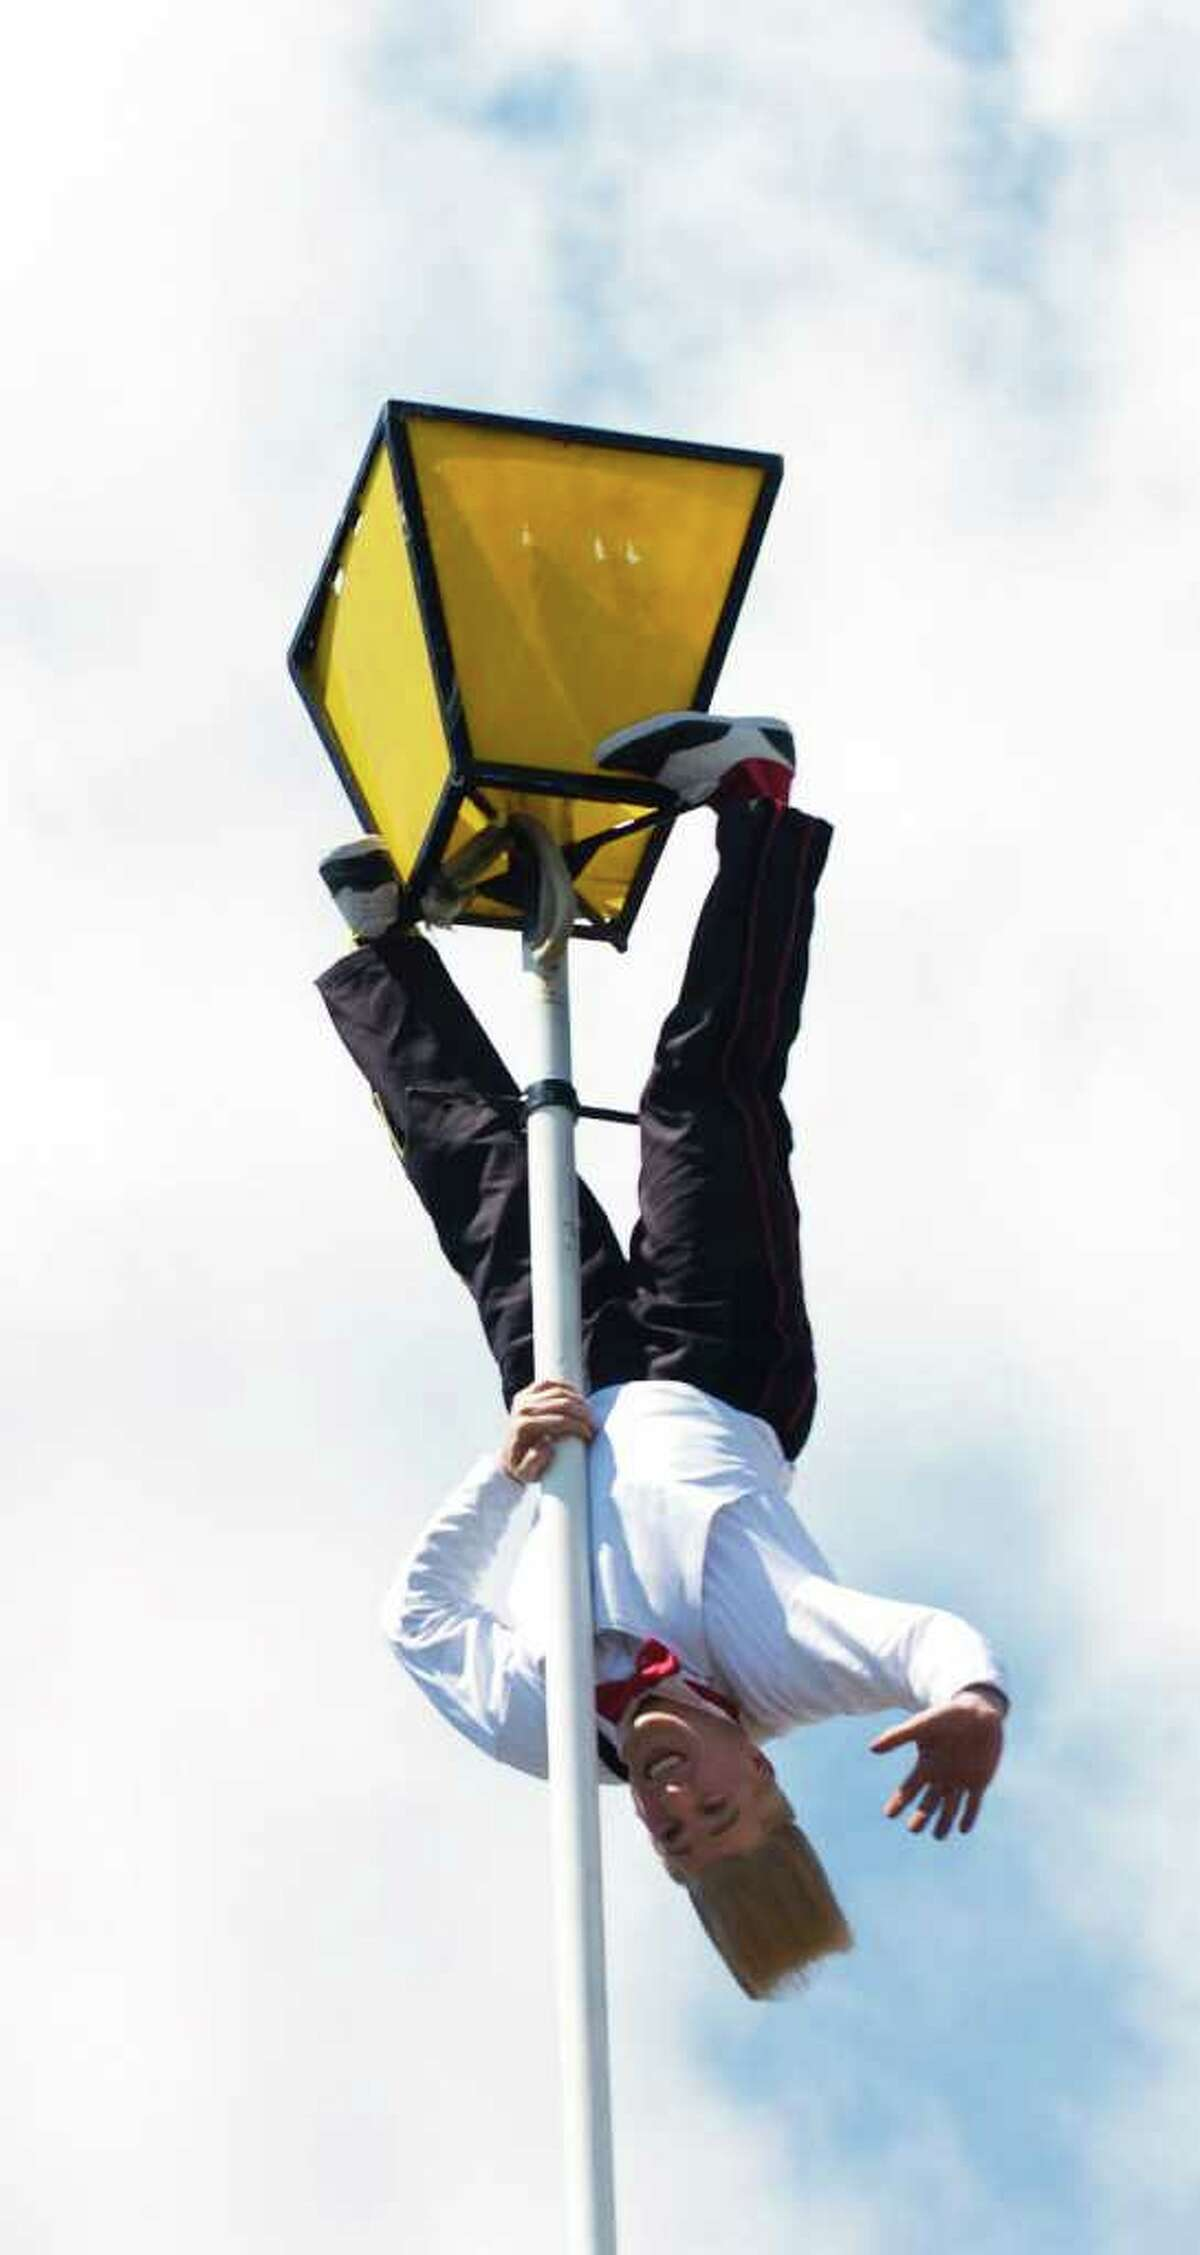 Bello Nock, the most famous daredevil clown, and star of the Big Apple Circus hangs upside down as he performs a stunt atop a 92 foot pole in Columbus Park on Tuesday May 4, 2010 in Stamford, Conn. The performance was to promote the Big Apple Circus' 32nd allñnew show, Bello is Back! as it makes its first ever appearance under the Big Top in Mill River Park from July 9 through July 25.